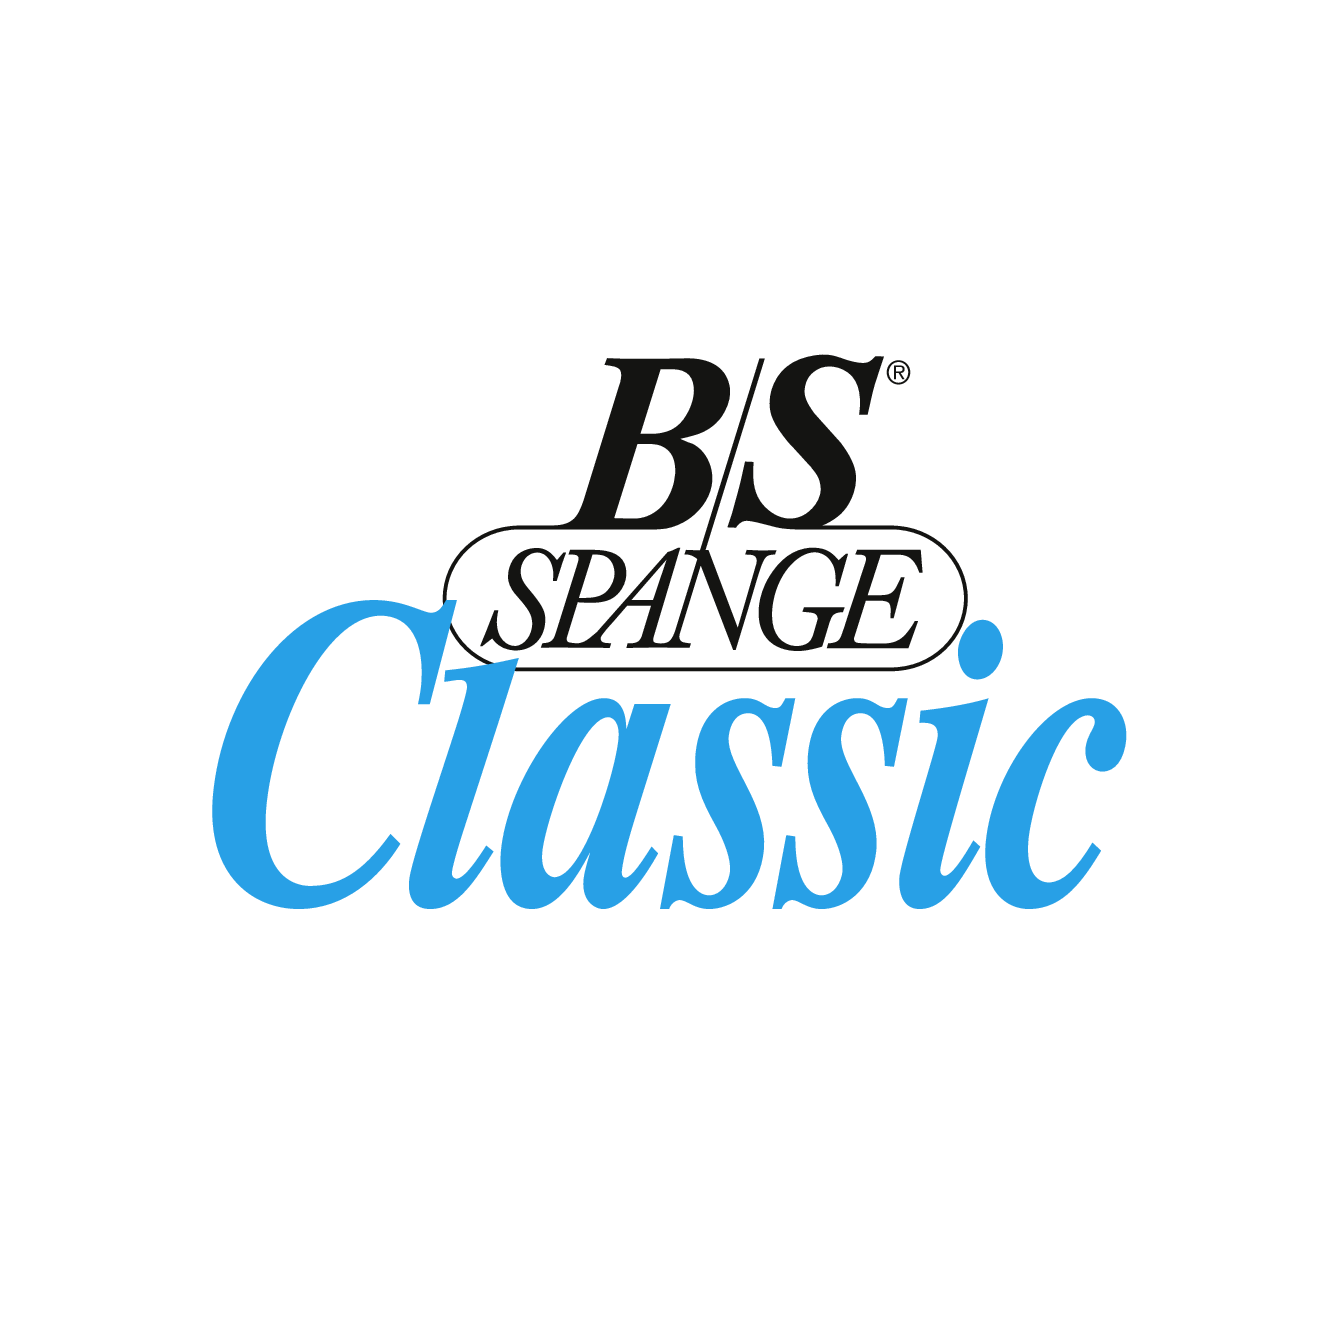 BS Spange Classic